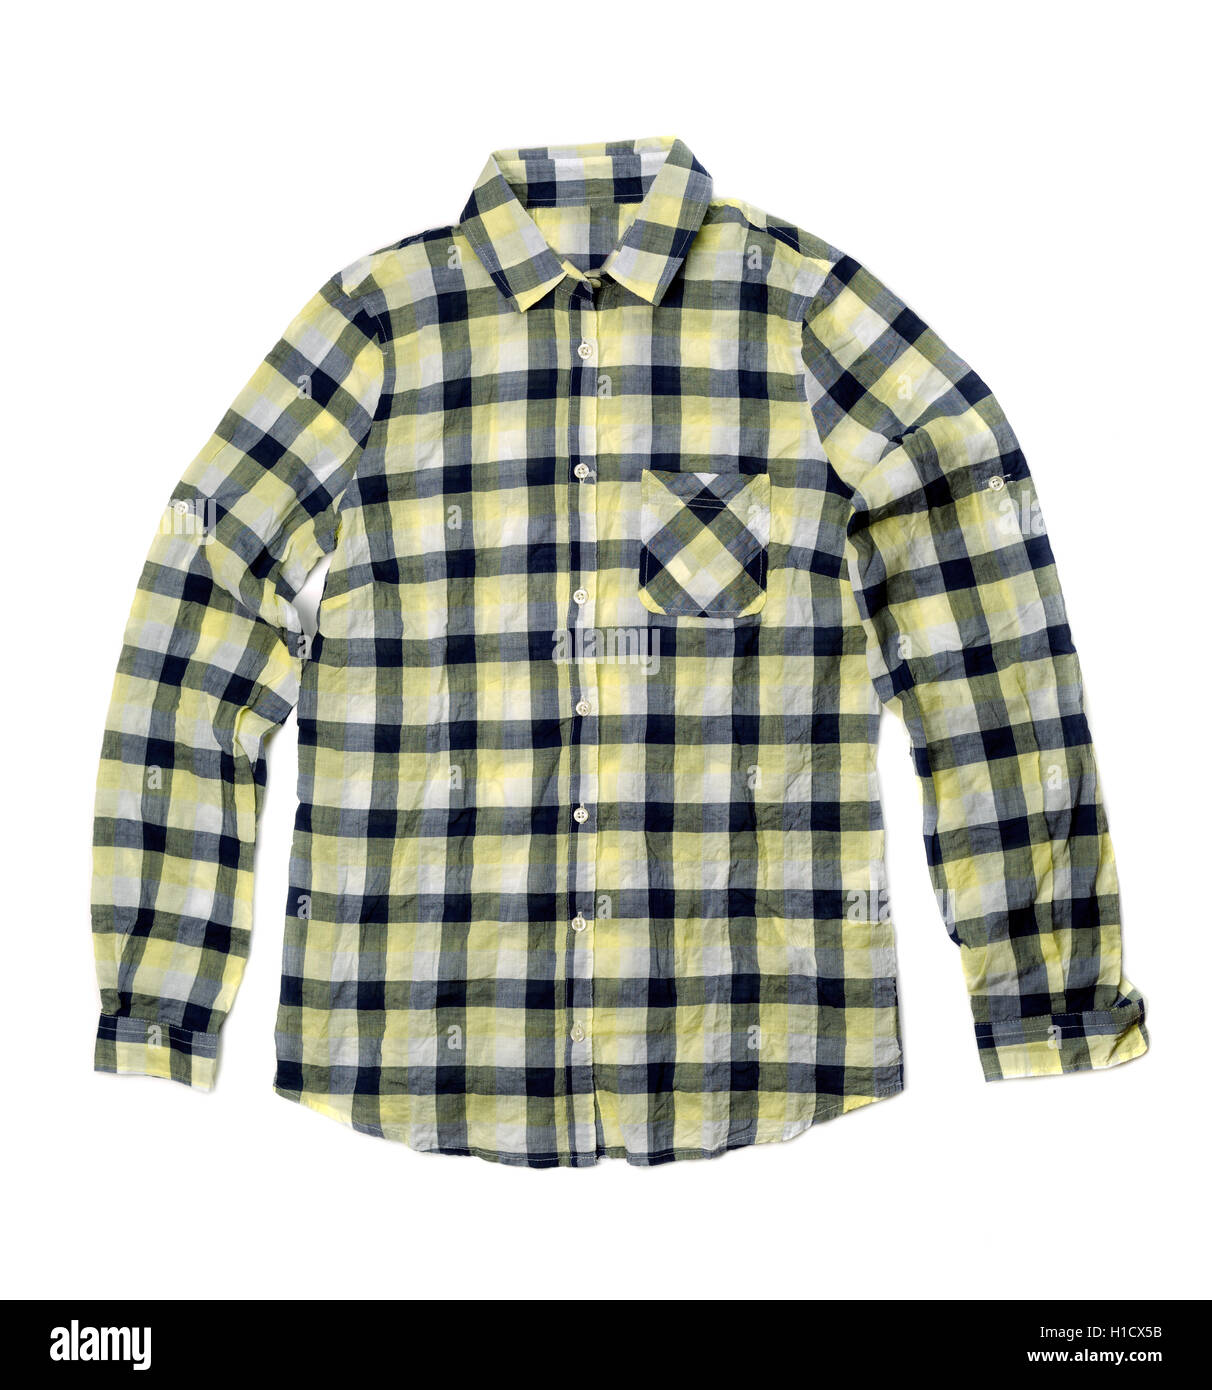 0d133075d05 Yellow checkered shirt. Isolate on white Stock Photo  121371191 - Alamy